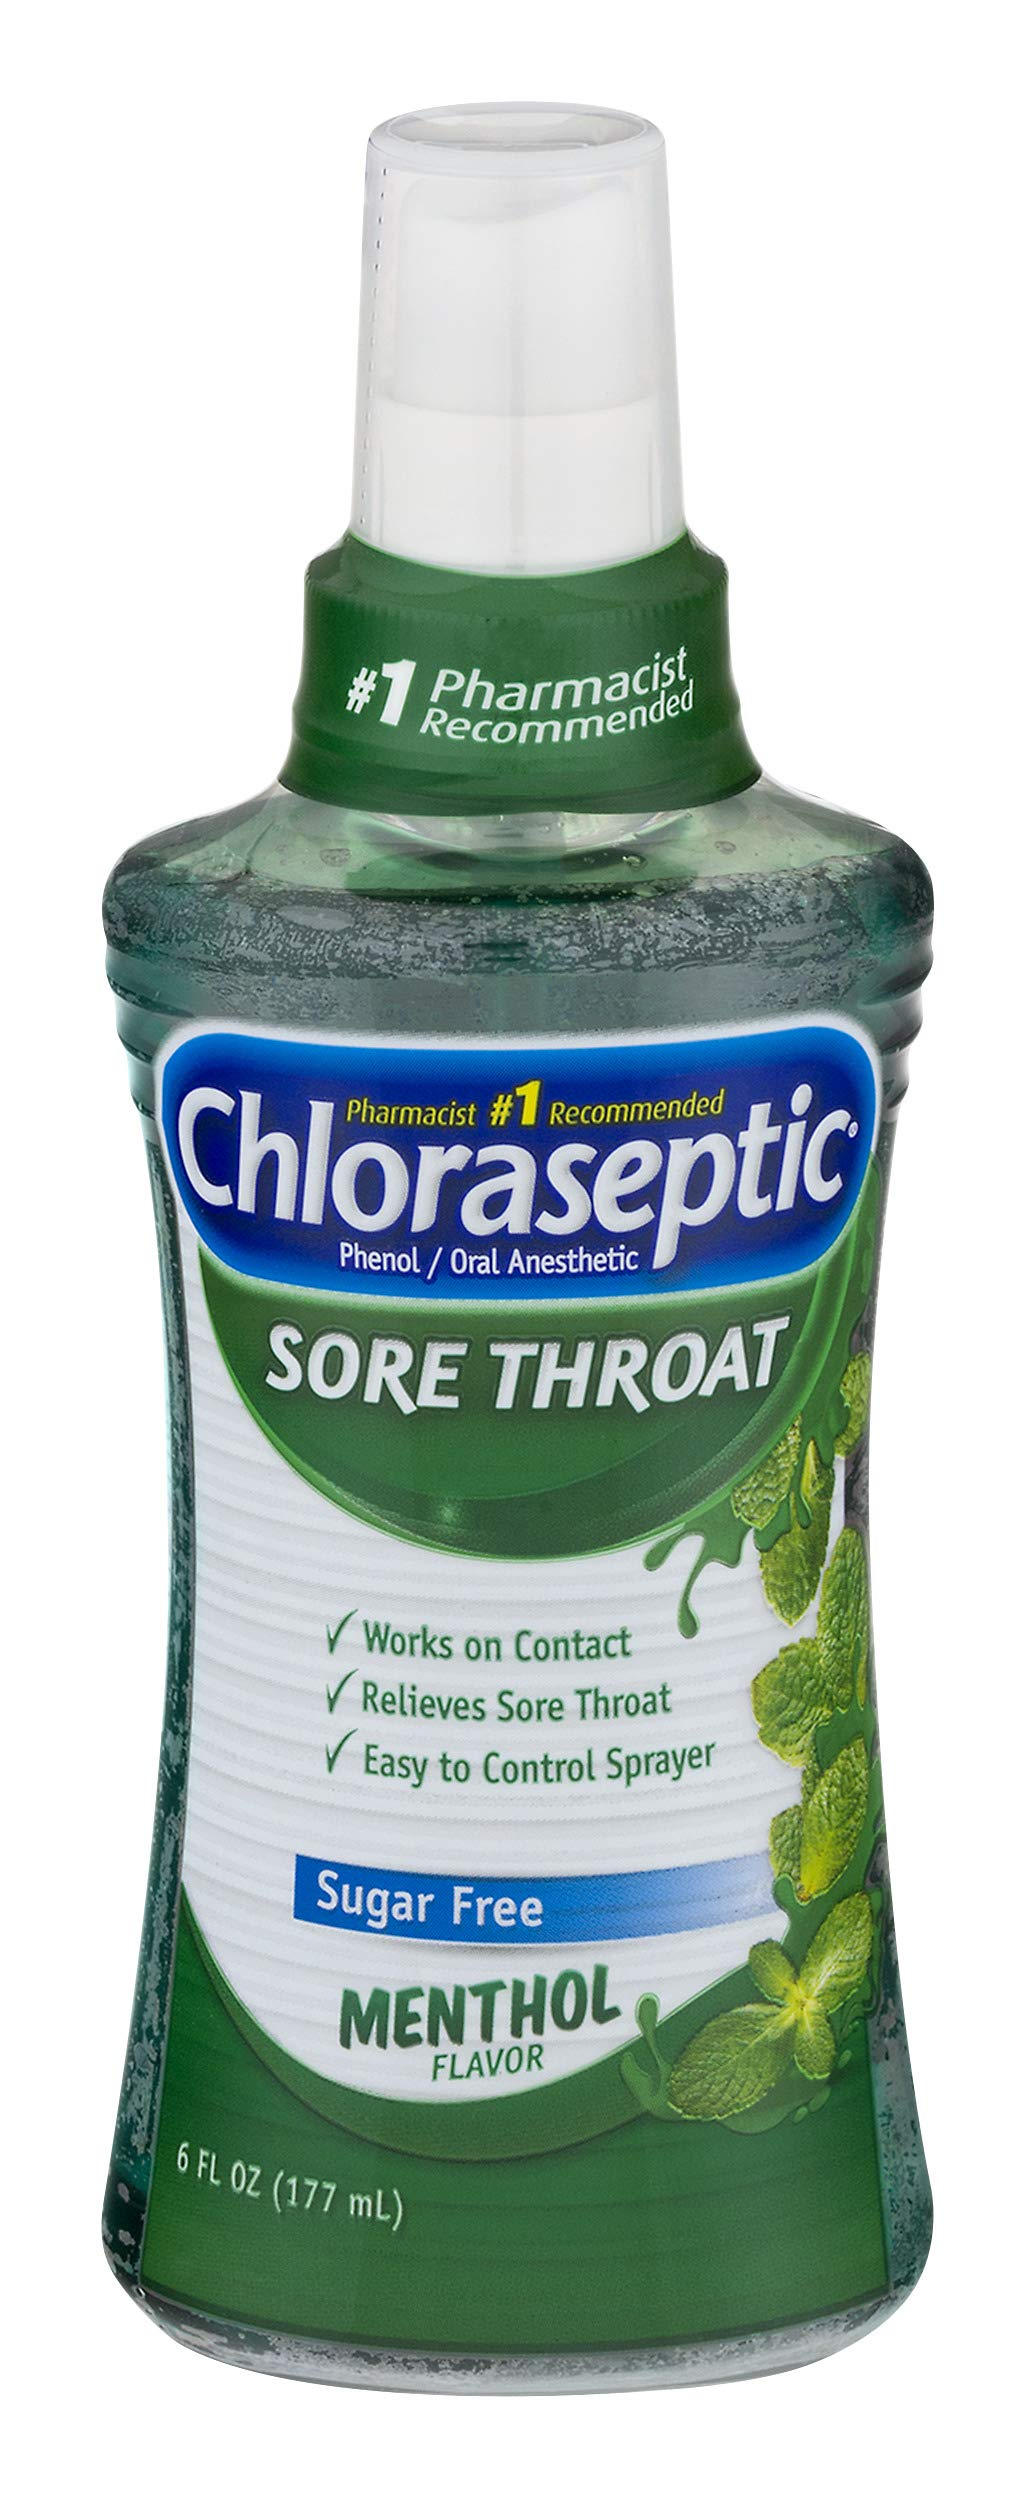 Chloraseptic Sore Throat Spray | Sugar Free Menthol | 6 Ounce | Pack of 3 | #1 Pharmacist Recommended Brand for Sore Throat Medicine